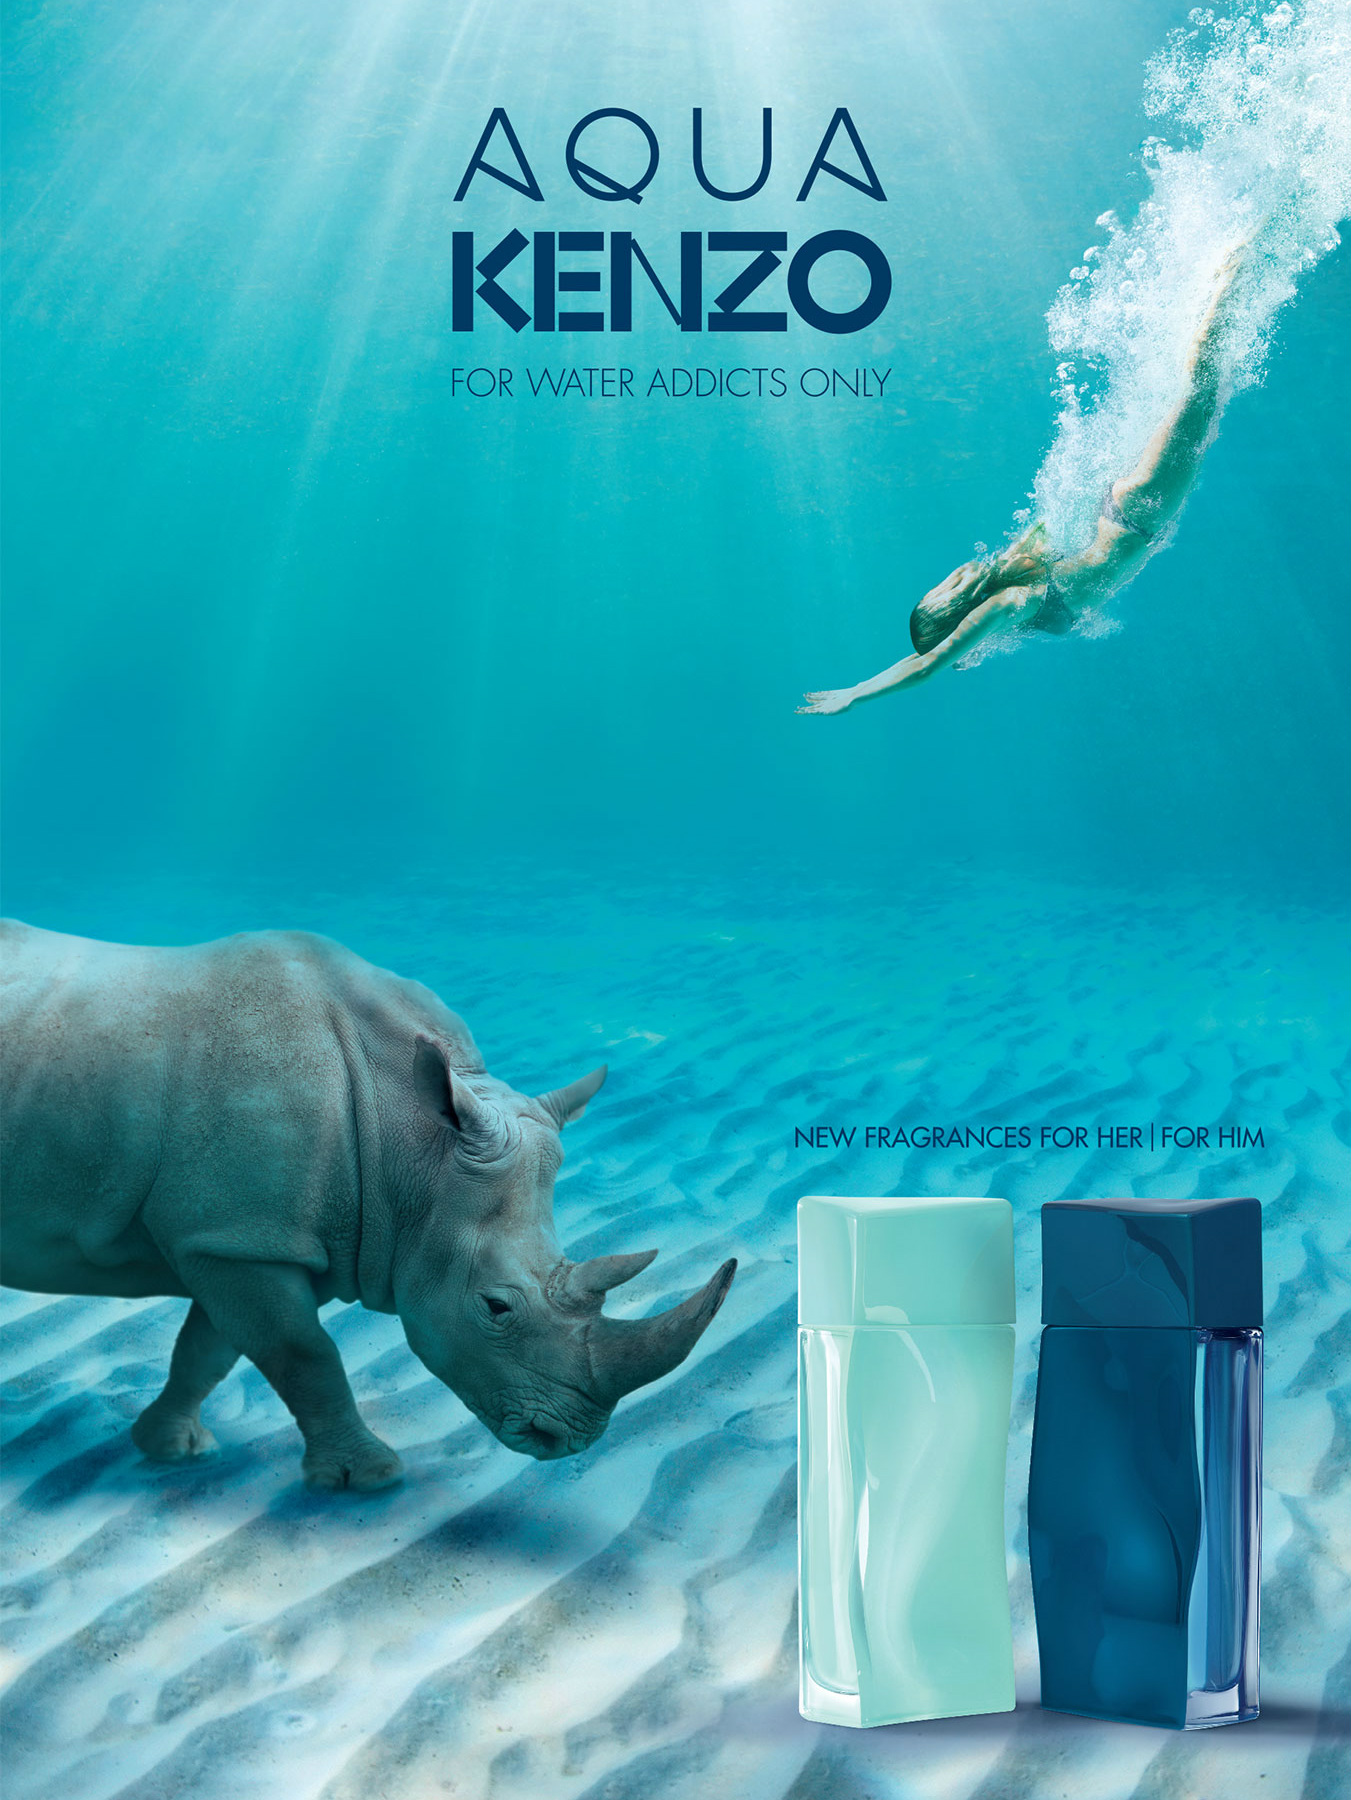 Aqua Kenzo pour Femme and homme